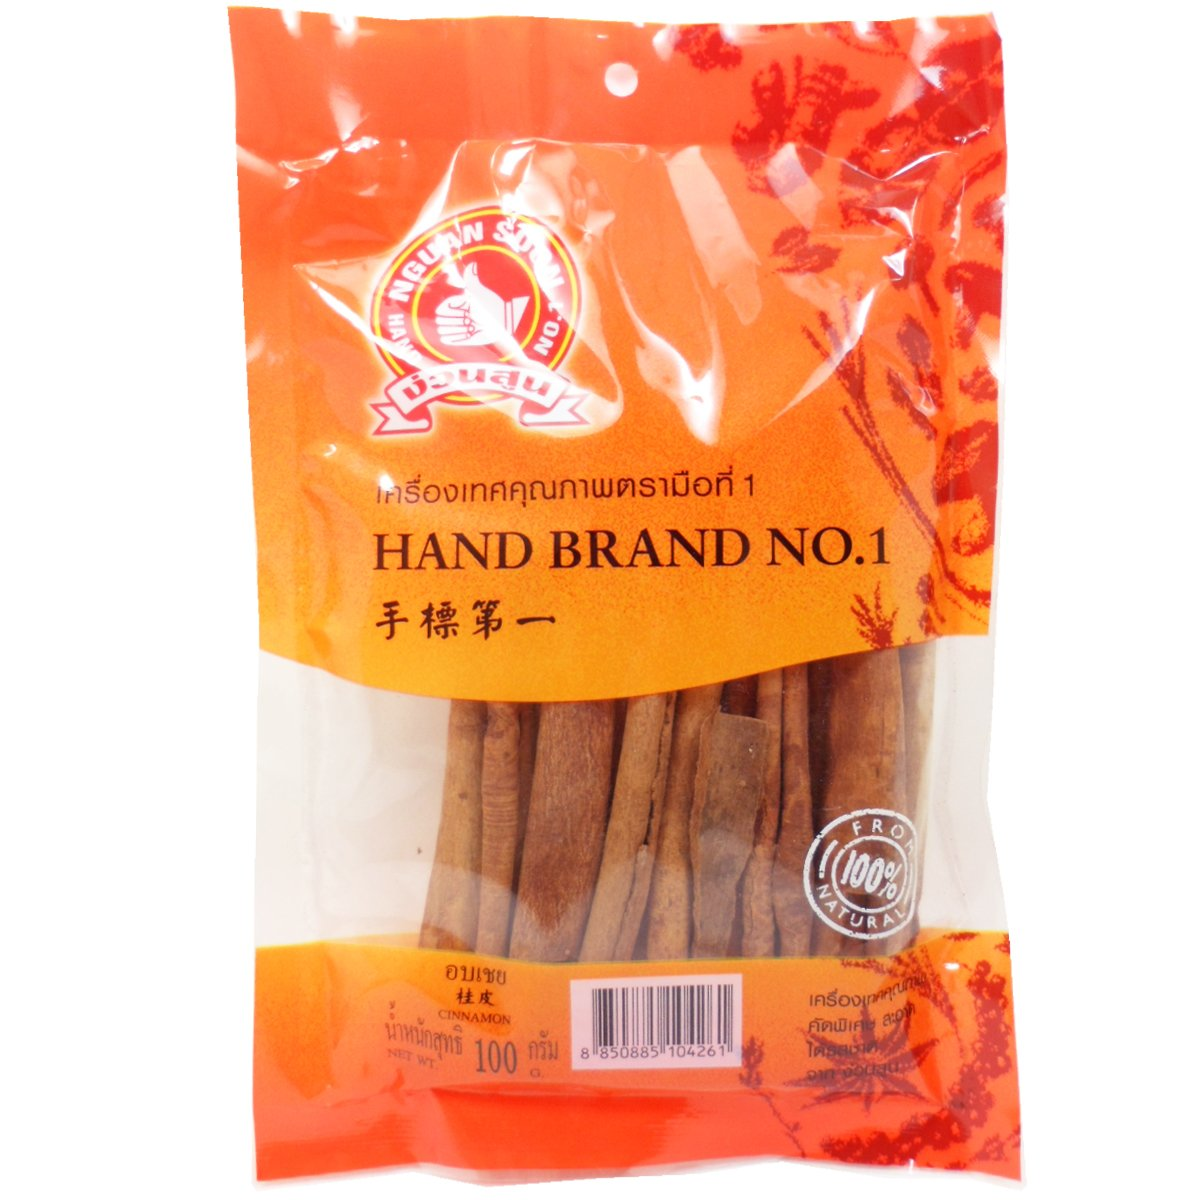 Cinnamon 100% From Natural Net Wt 100 G (3.53 Oz) Herbal Spice Food X 1 Bag